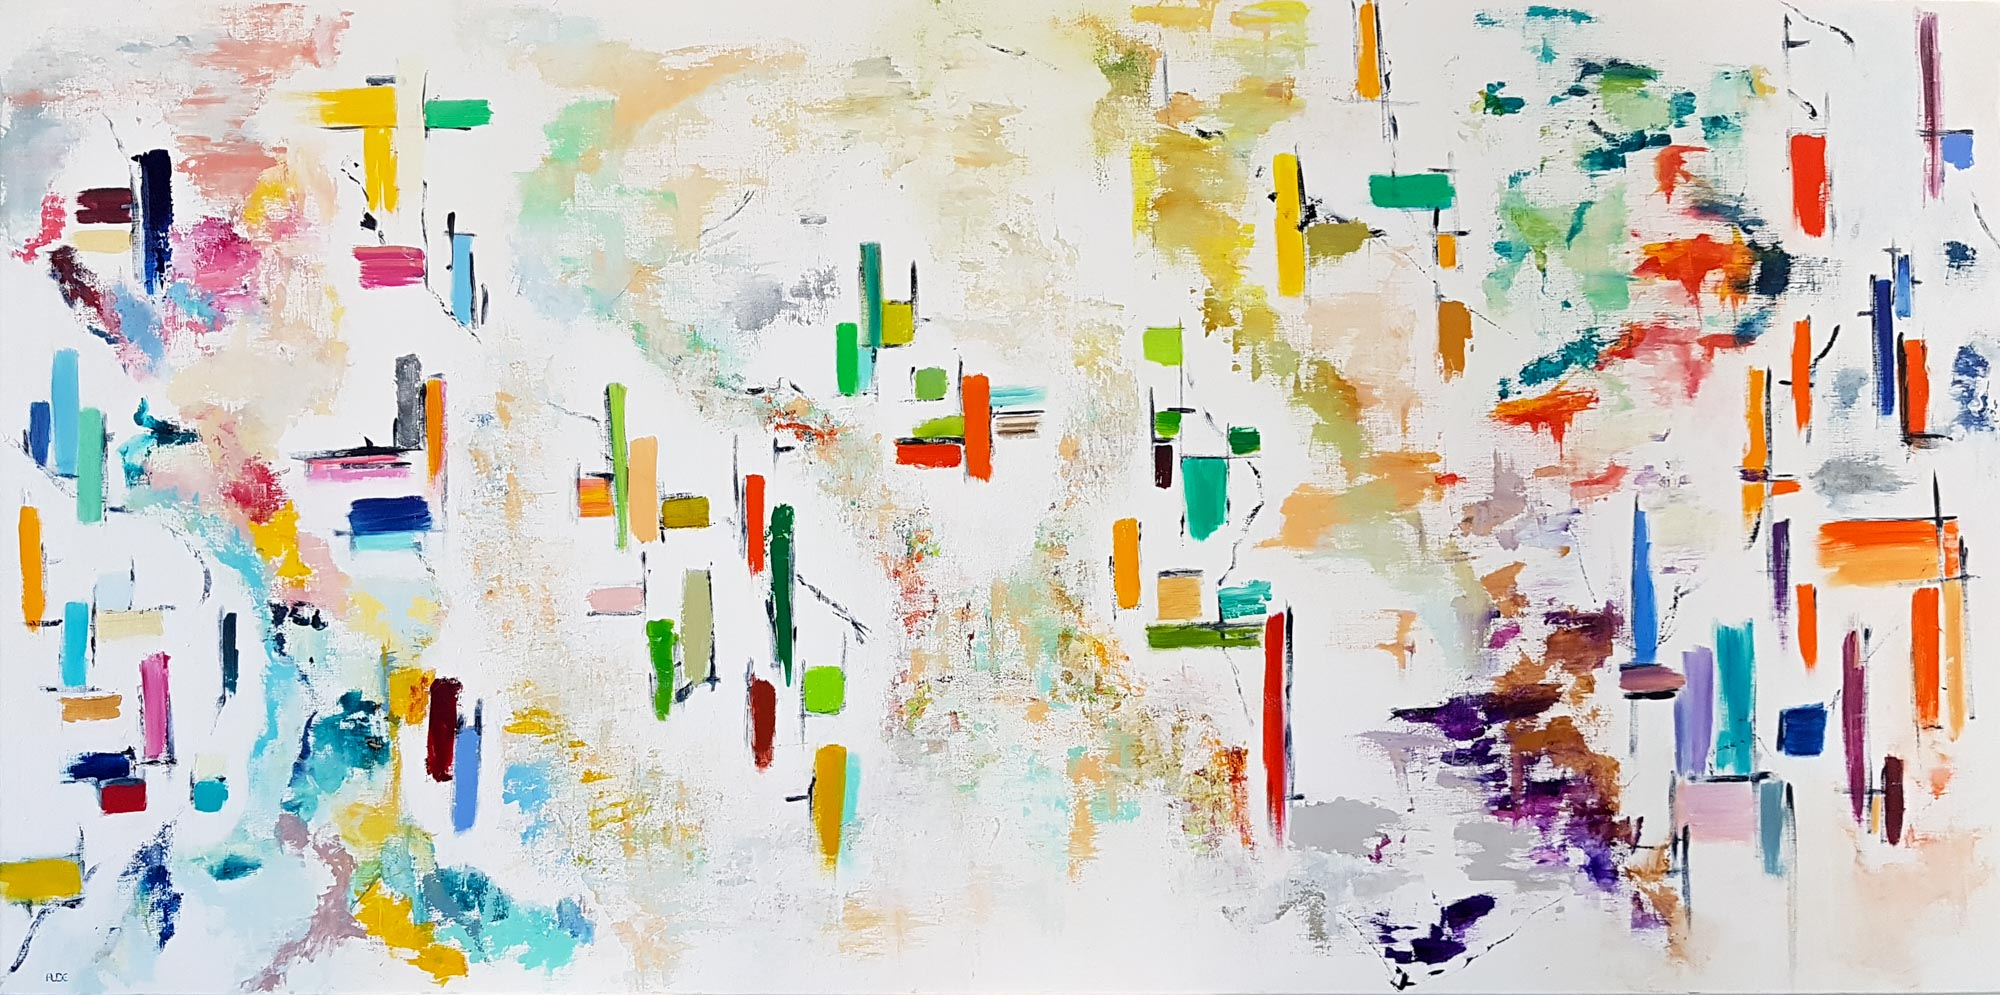 Inter-relation-97x165cm